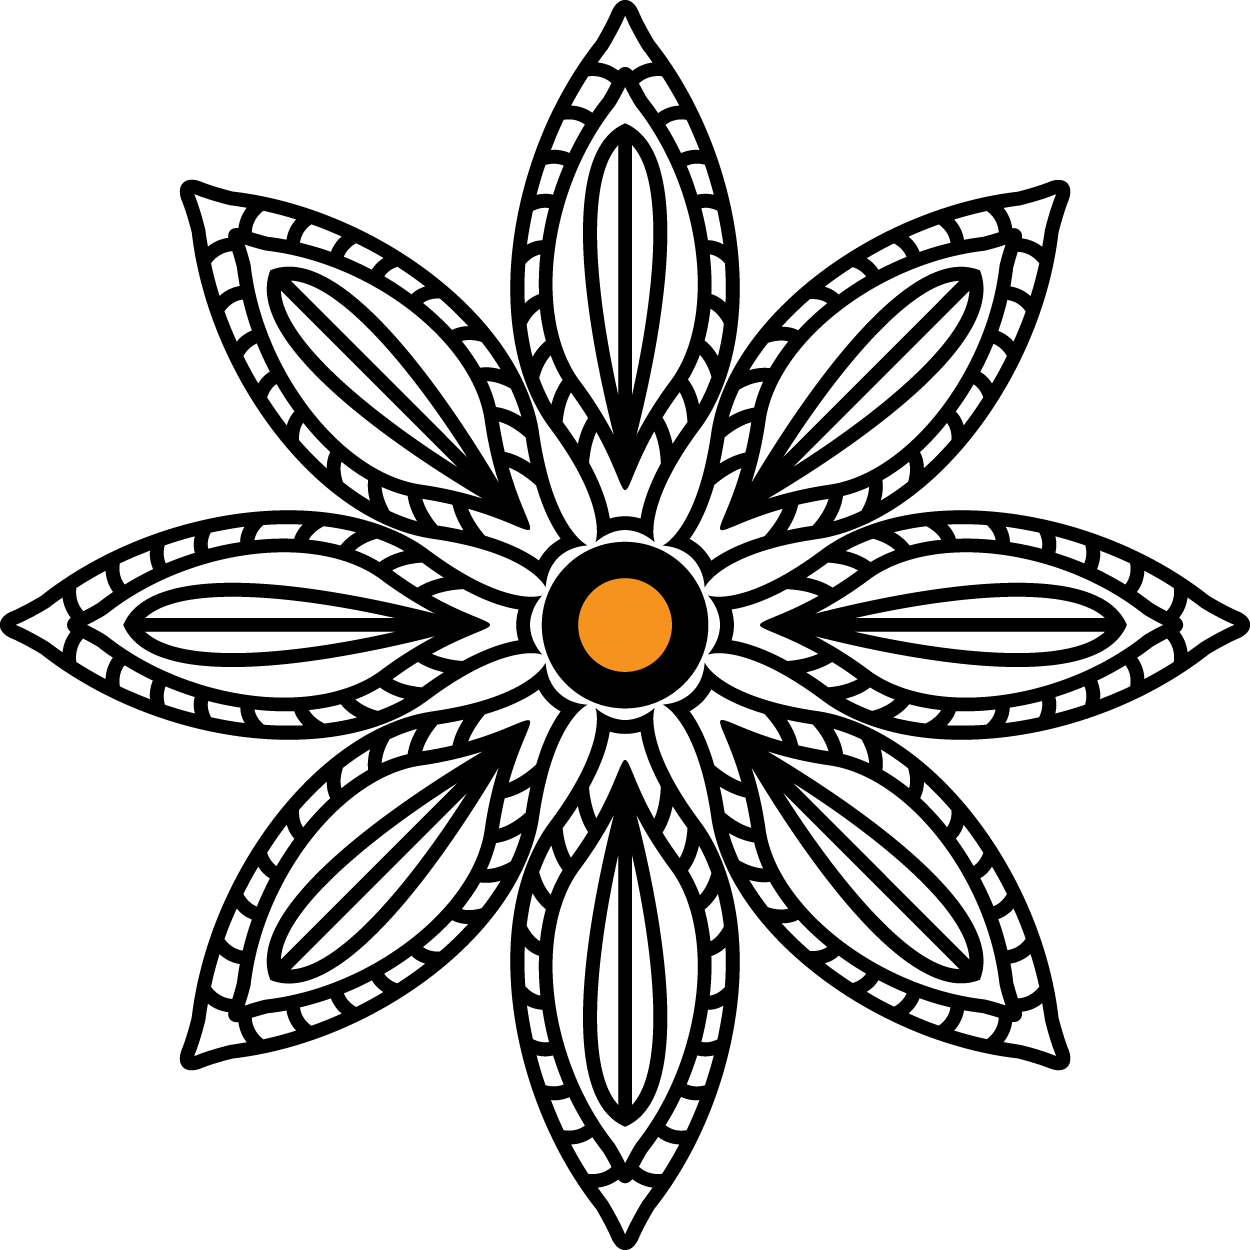 ANISE 300 x 300px.png